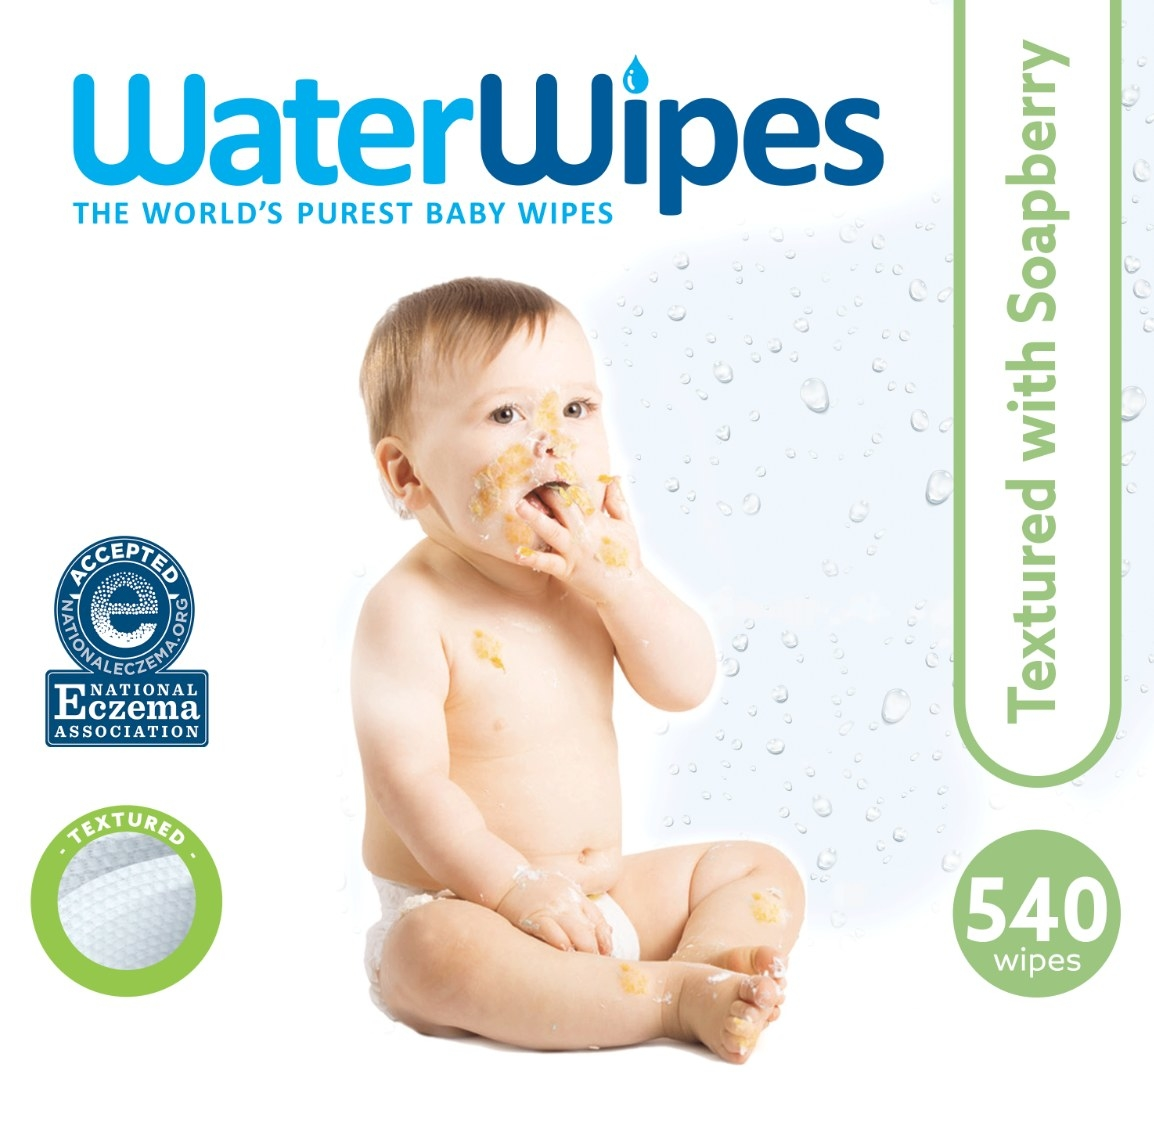 The set of textured wipes